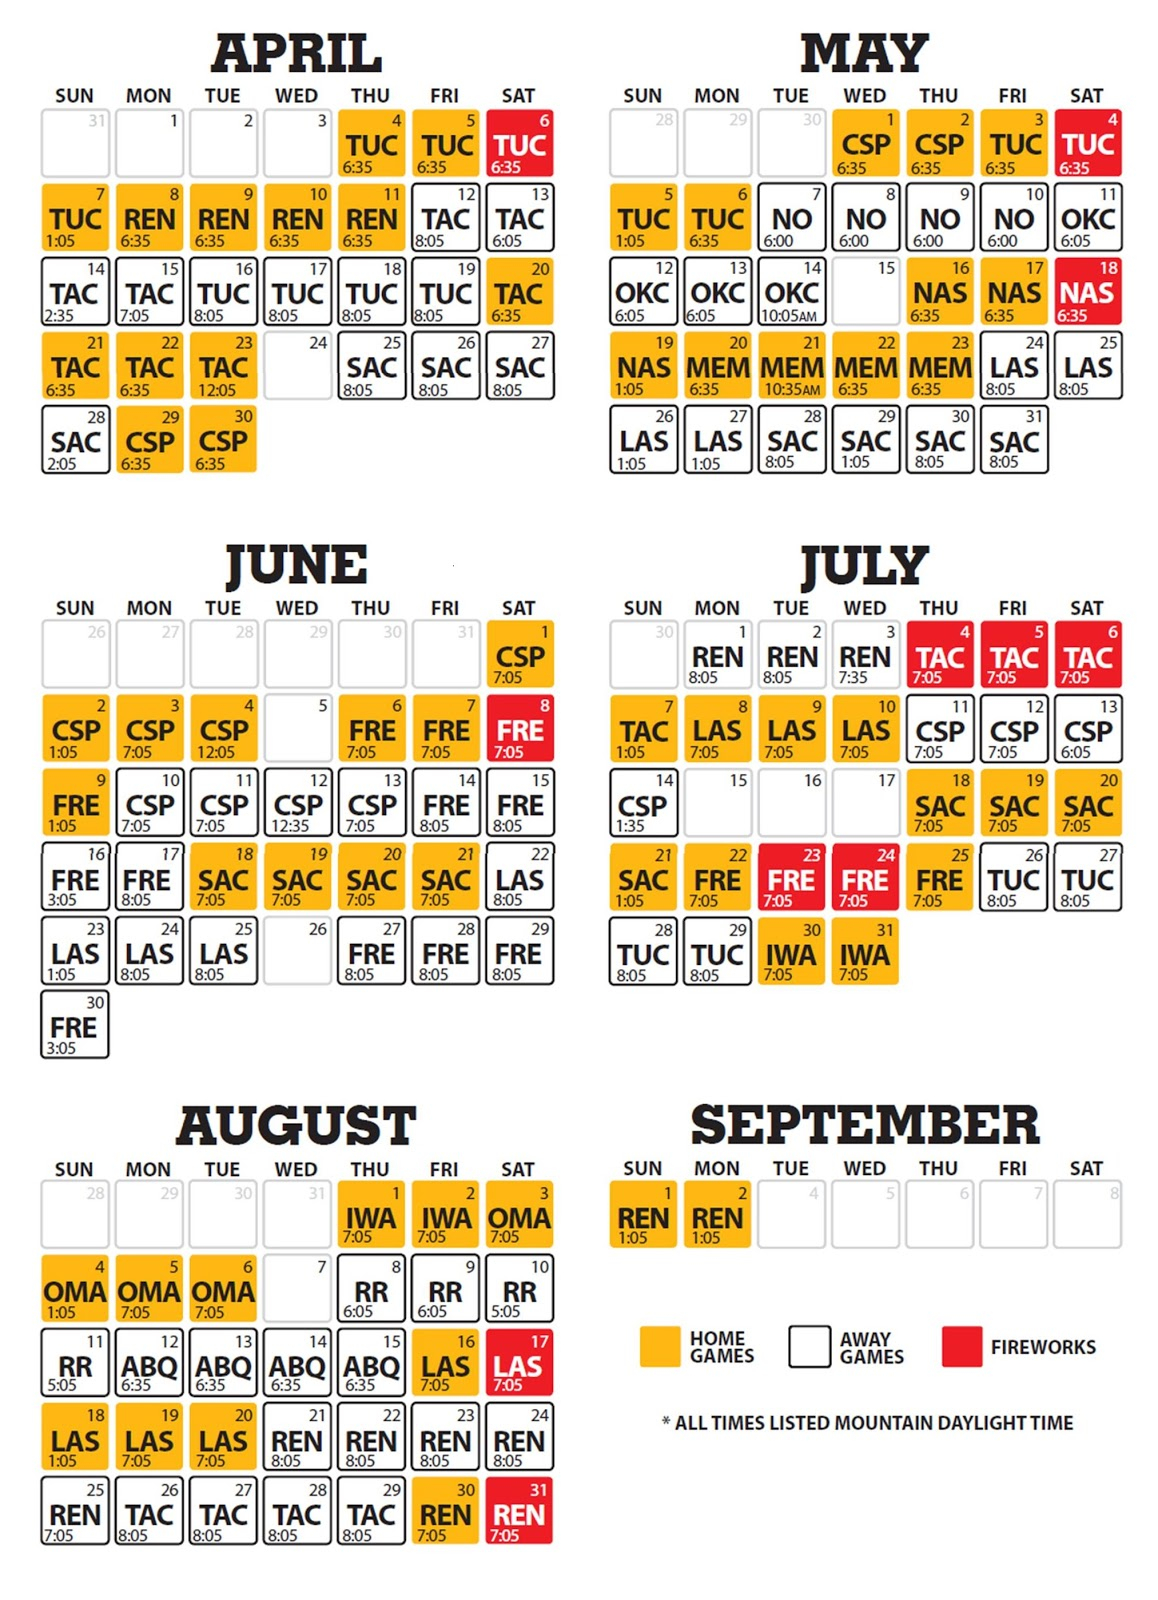 Salt Lake Bees Discount Tickets Info And More 2013